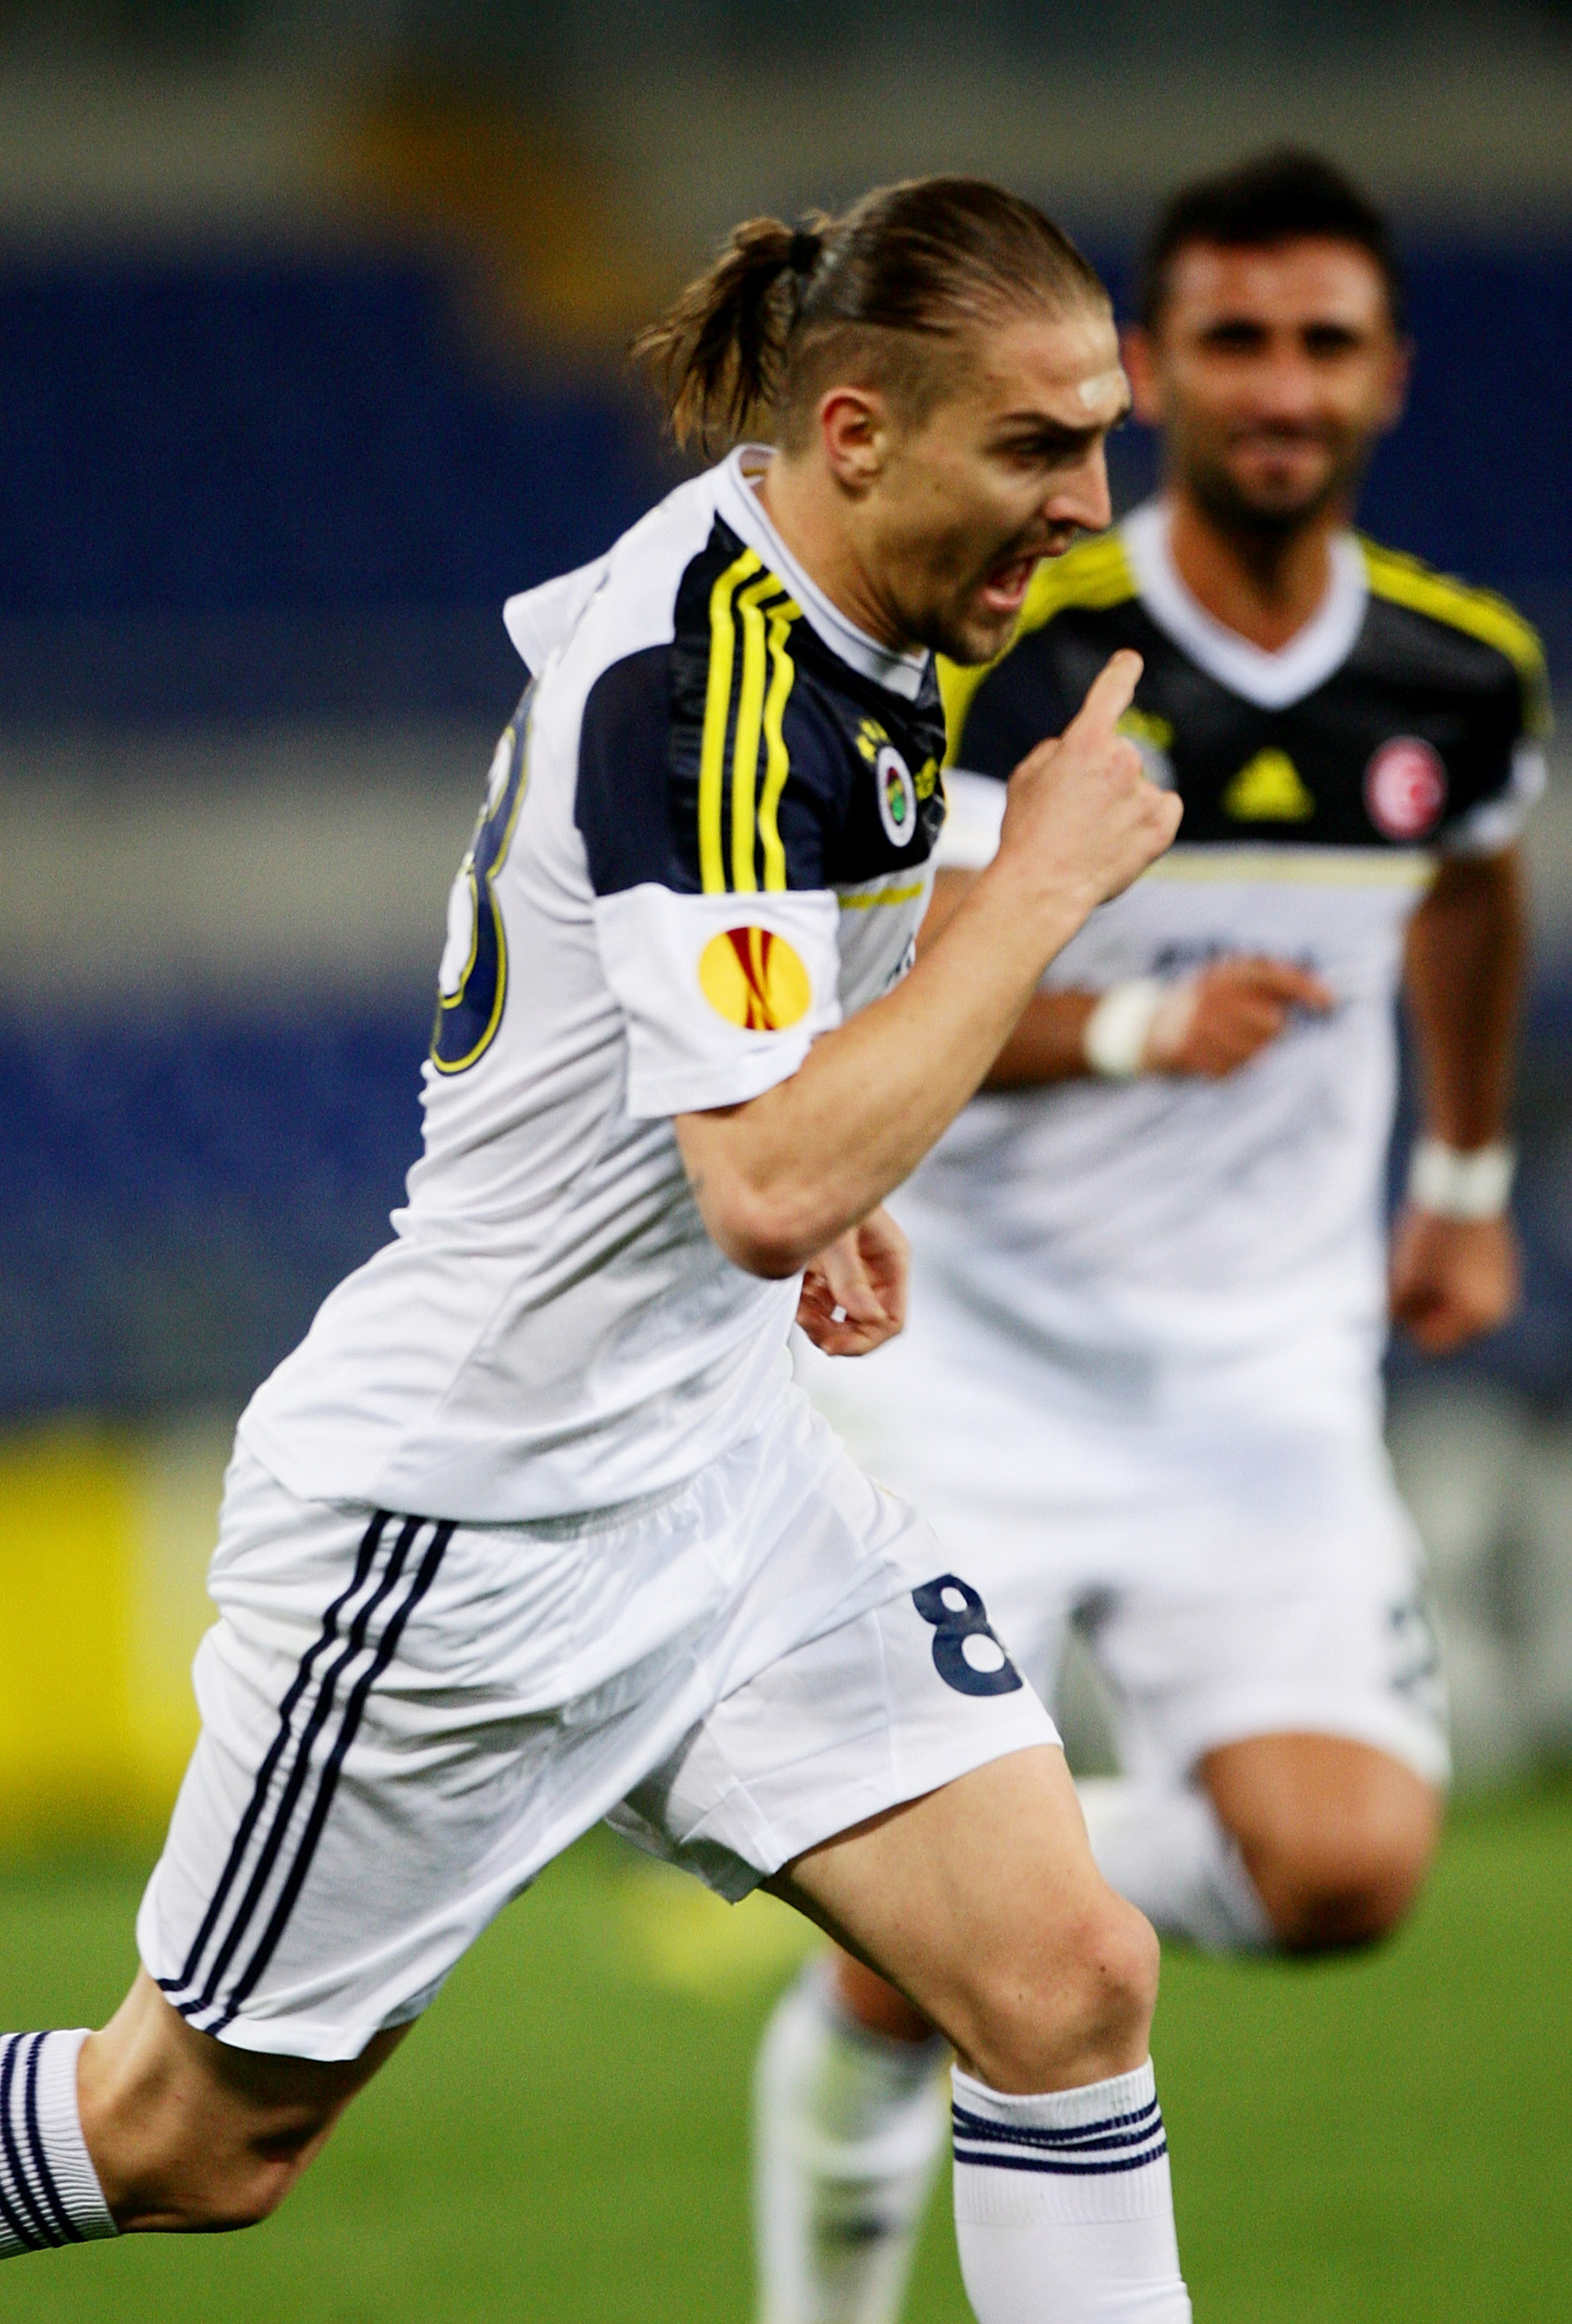 UEFA Champions League 2013: Fenerbahce, Lyon among seven teams advancing to playoff round